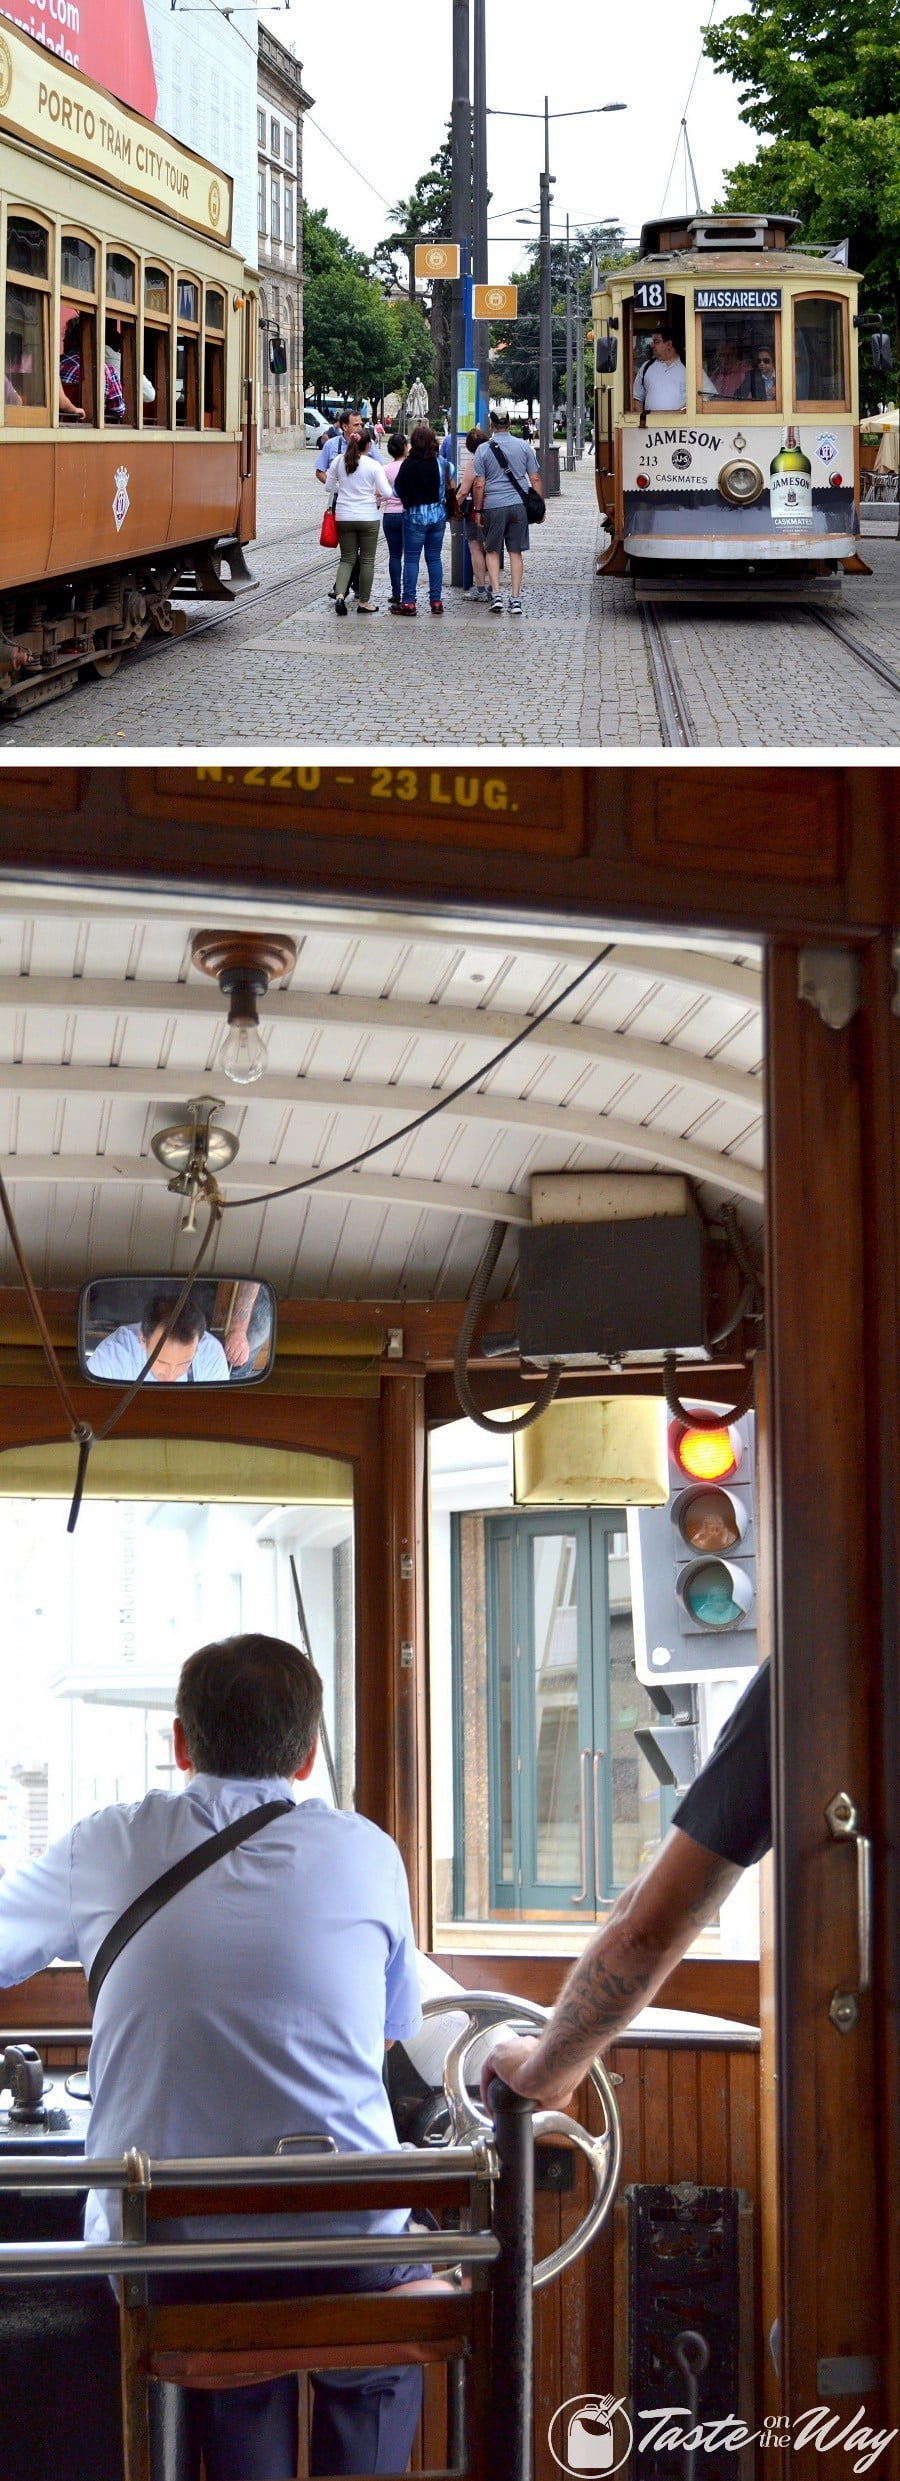 One of the top #thingstodo in #Porto, #Portugal is to ride the historical tram. Check out for more! #travel #photography @tasteontheway